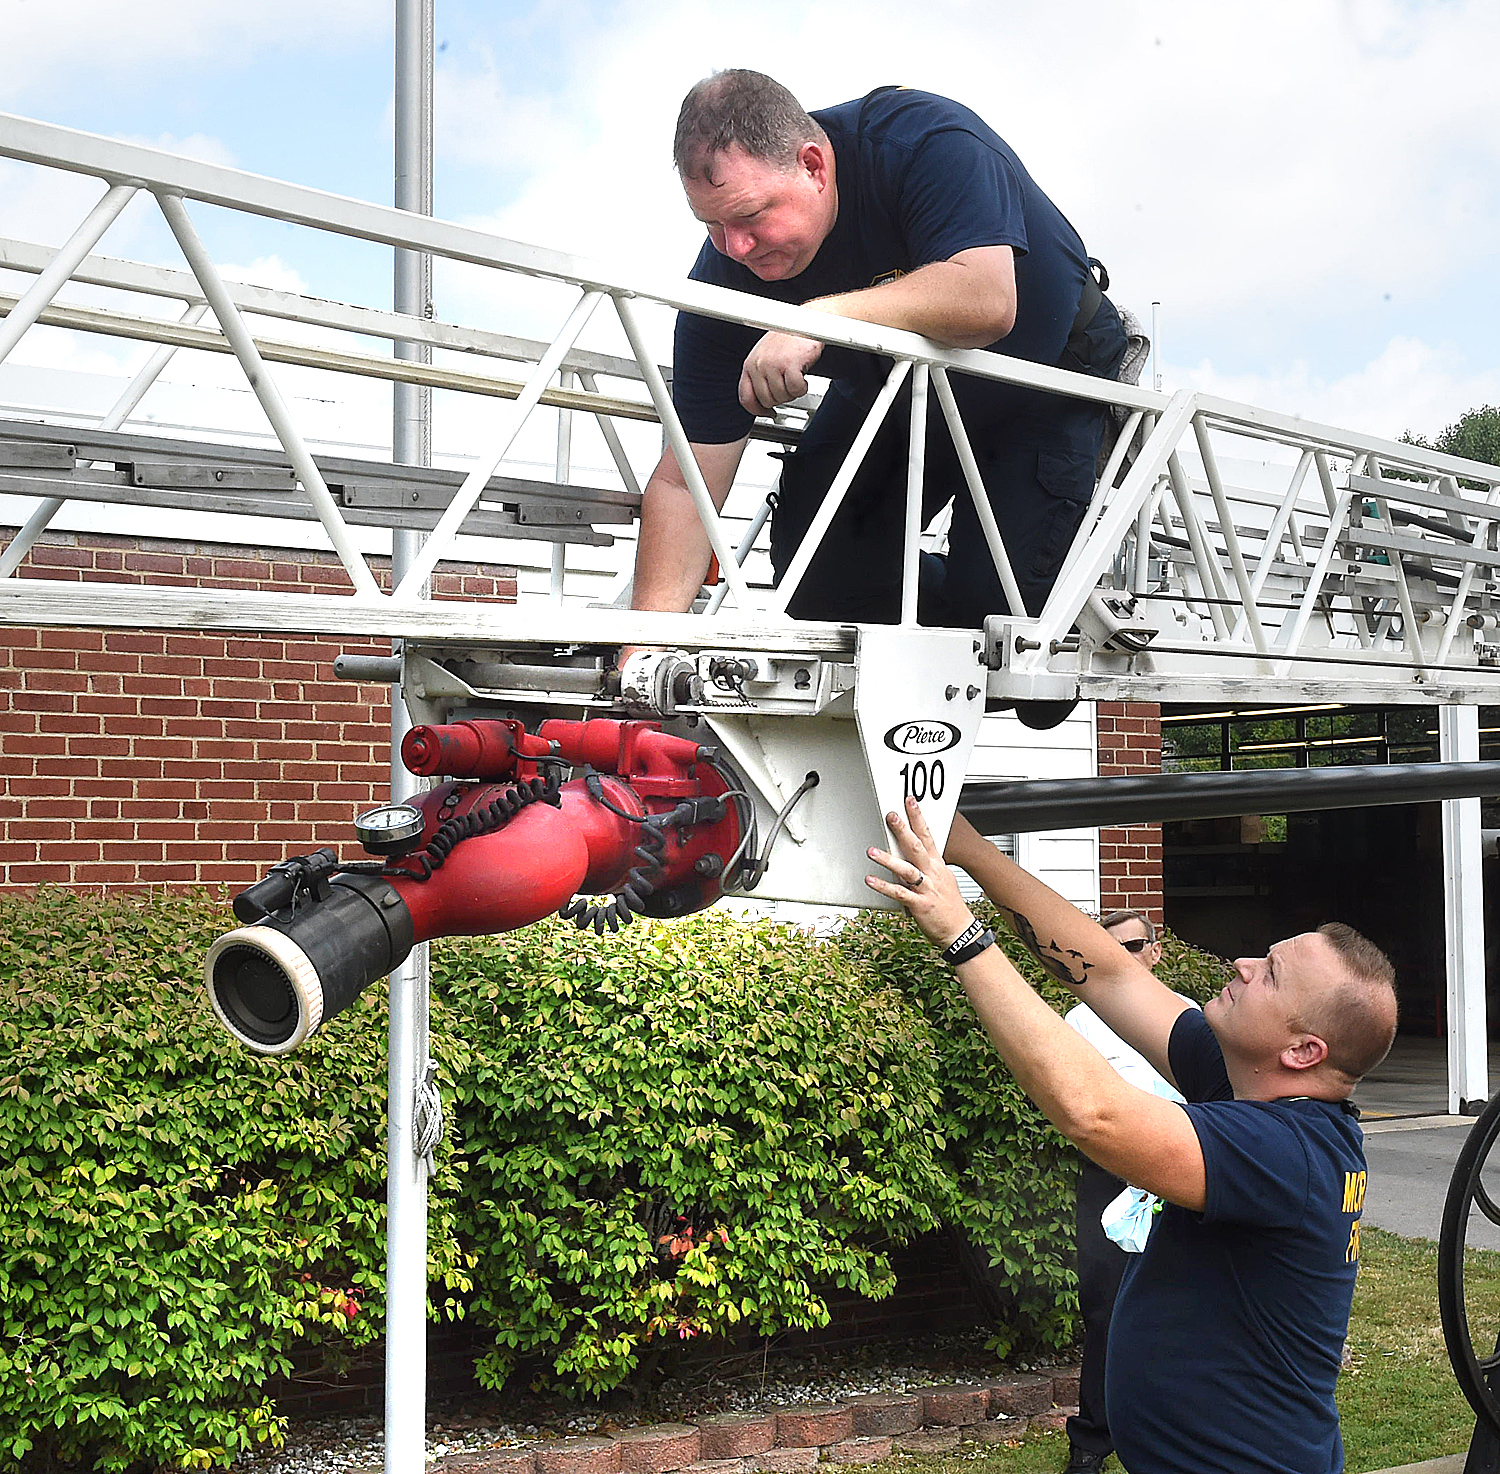 firefighters check the nozzle on extension ladder